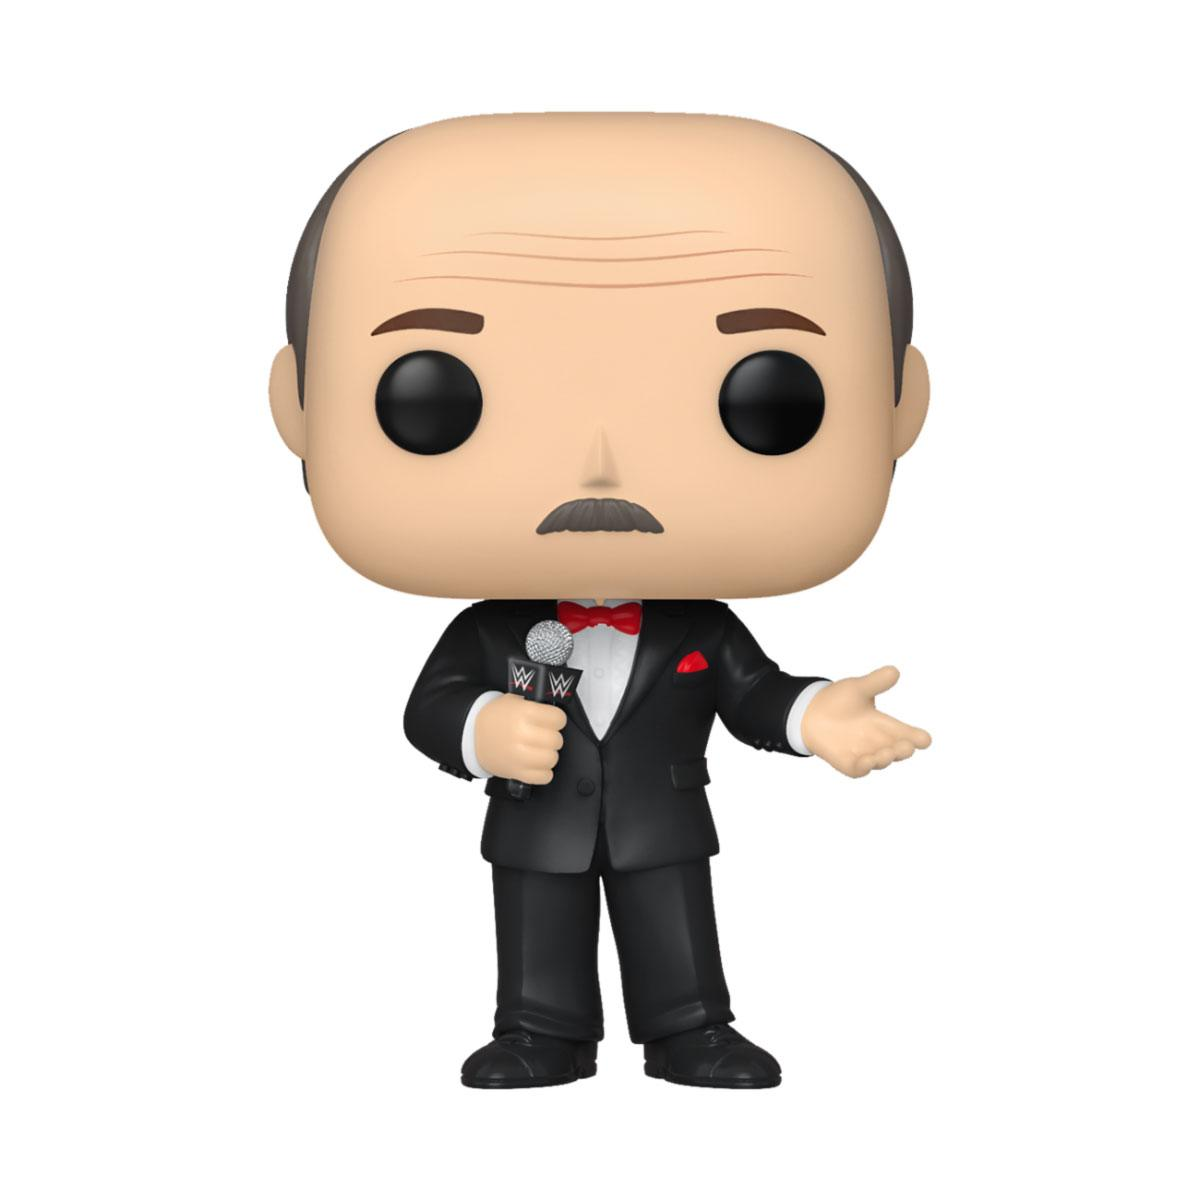 WWE POP! Vinyl Figure Mean Gene 9 cm